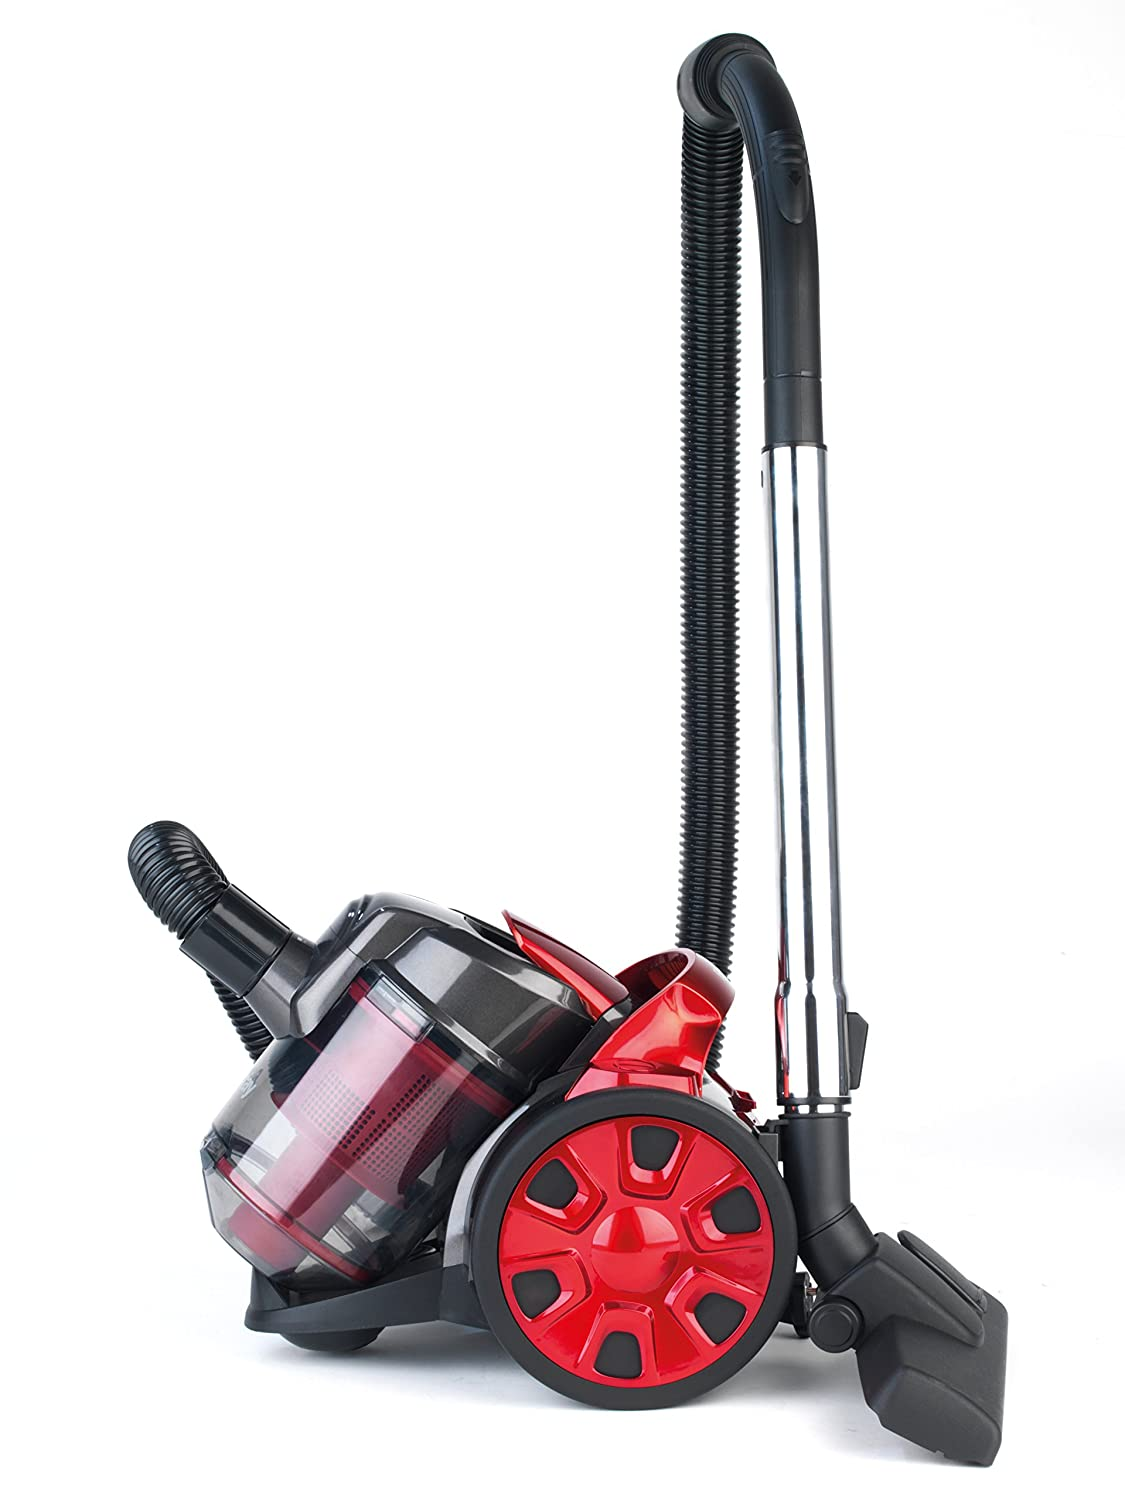 Beldray BEL0456 Compact Vac Lite Vacuum Cleaner 1000 W Red Amazoncouk Kitchen Home